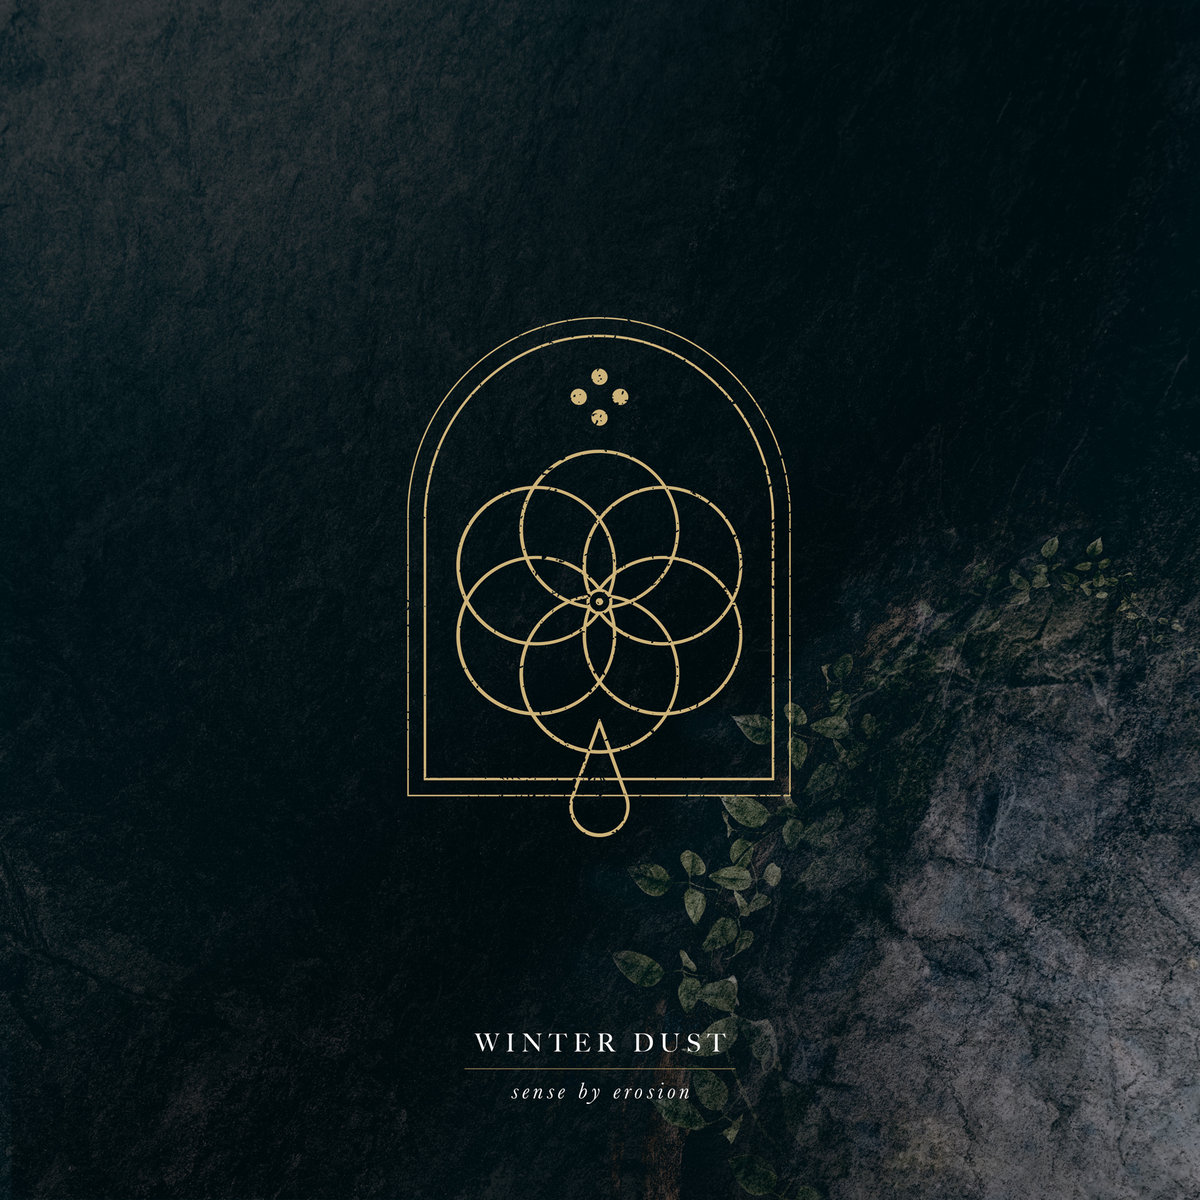 Winter Dust - Sense by Erosion (2018)